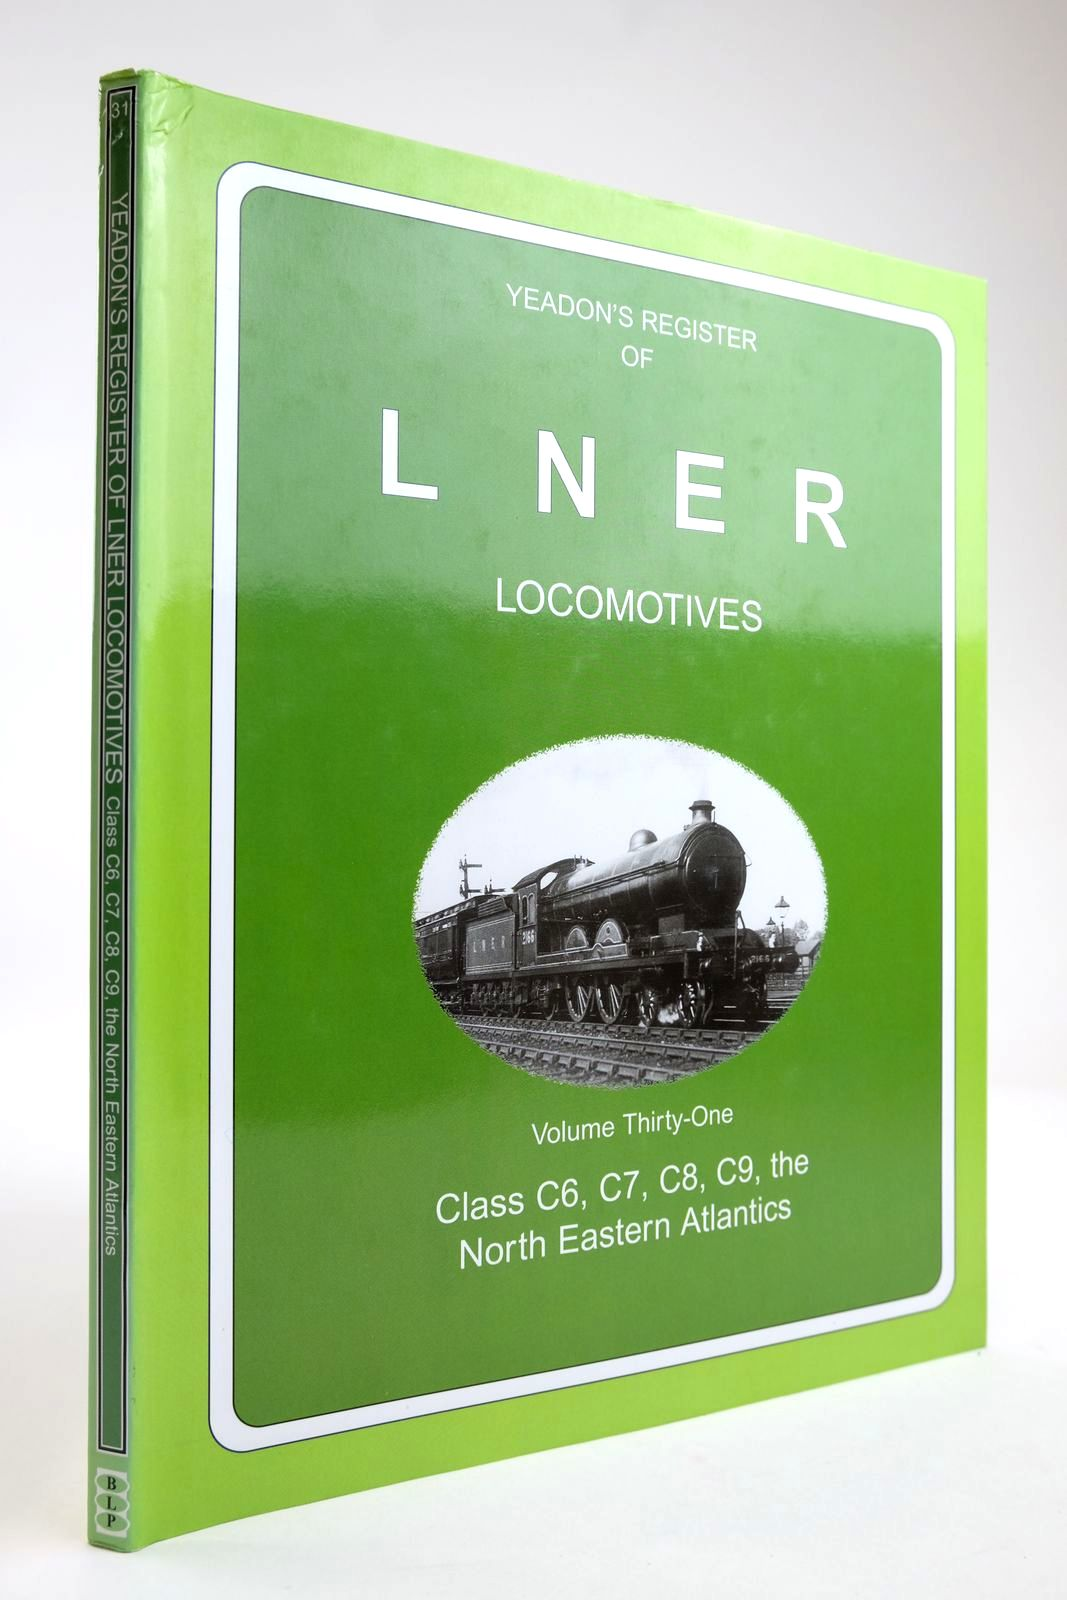 Photo of YEADON'S REGISTER OF LNER LOCOMOTIVES VOLUME THIRTY-ONE written by Yeadon, W.B. published by Book Law Publications, Challenger Publications (STOCK CODE: 2133583)  for sale by Stella & Rose's Books